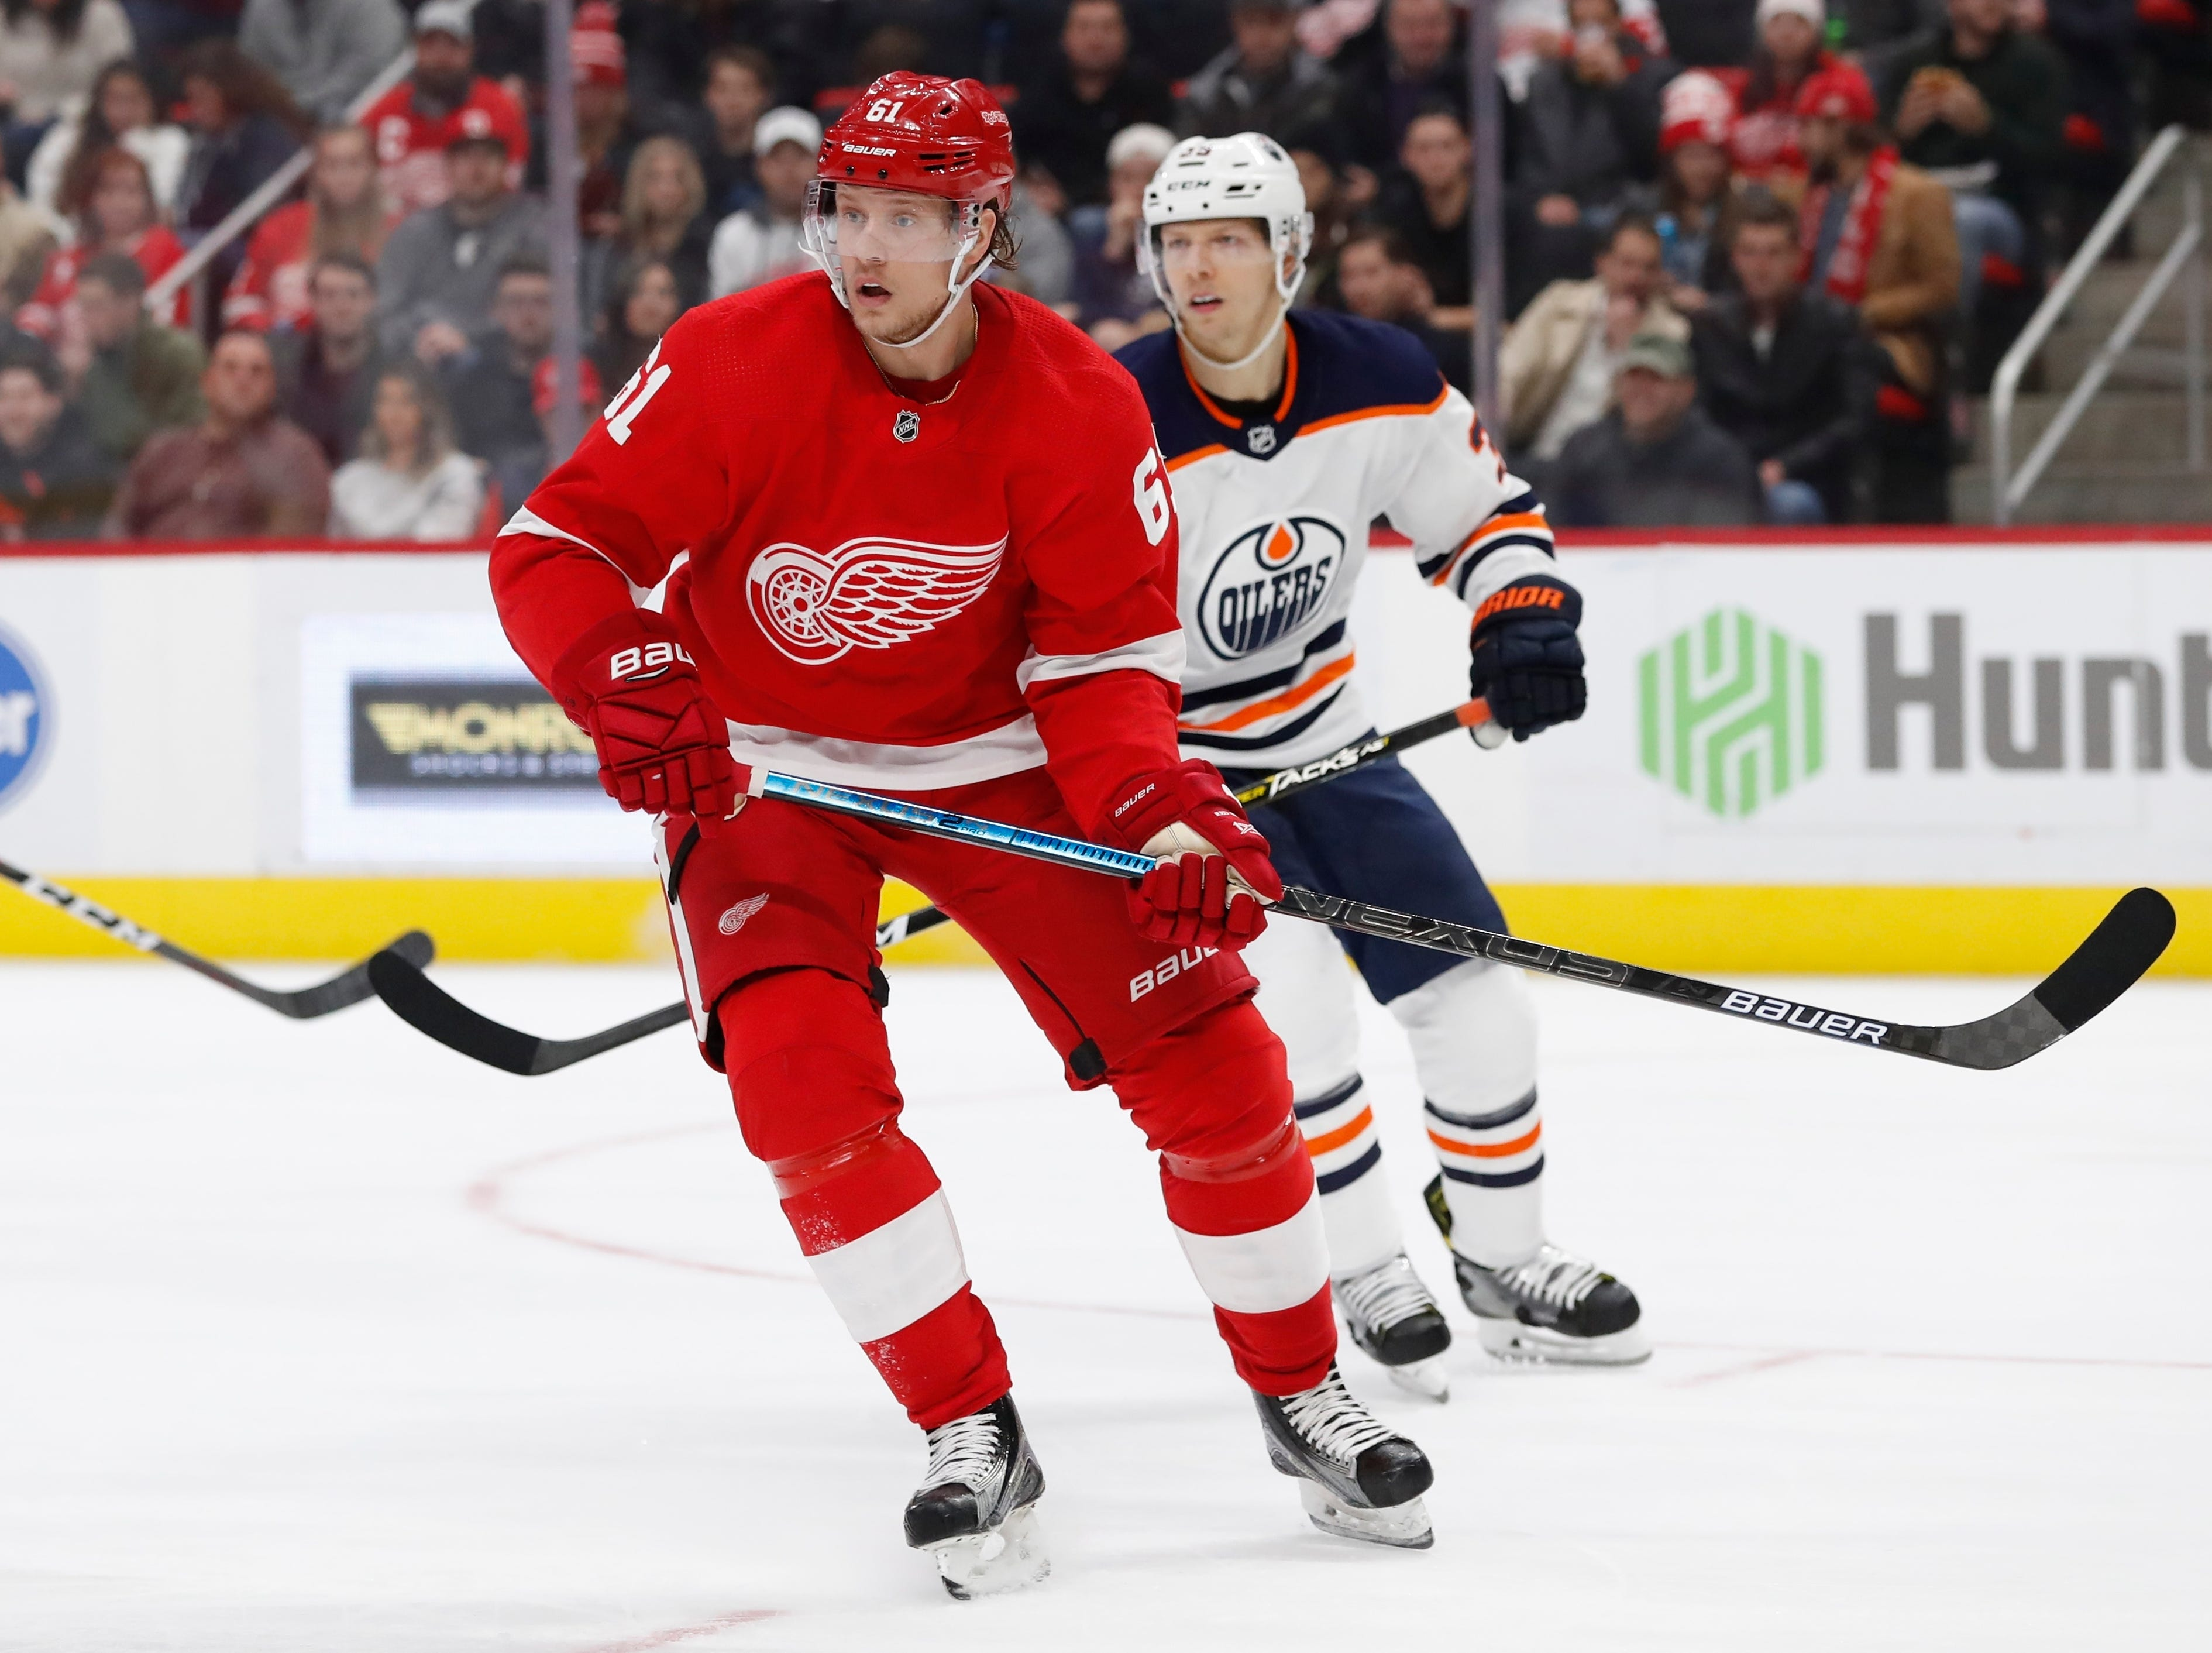 Detroit Red Wings left wing Jacob de la Rose (61) skates during the second period of an NHL hockey game against the Edmonton Oilers, Saturday, Nov. 3, 2018, in Detroit. (AP Photo/Carlos Osorio)